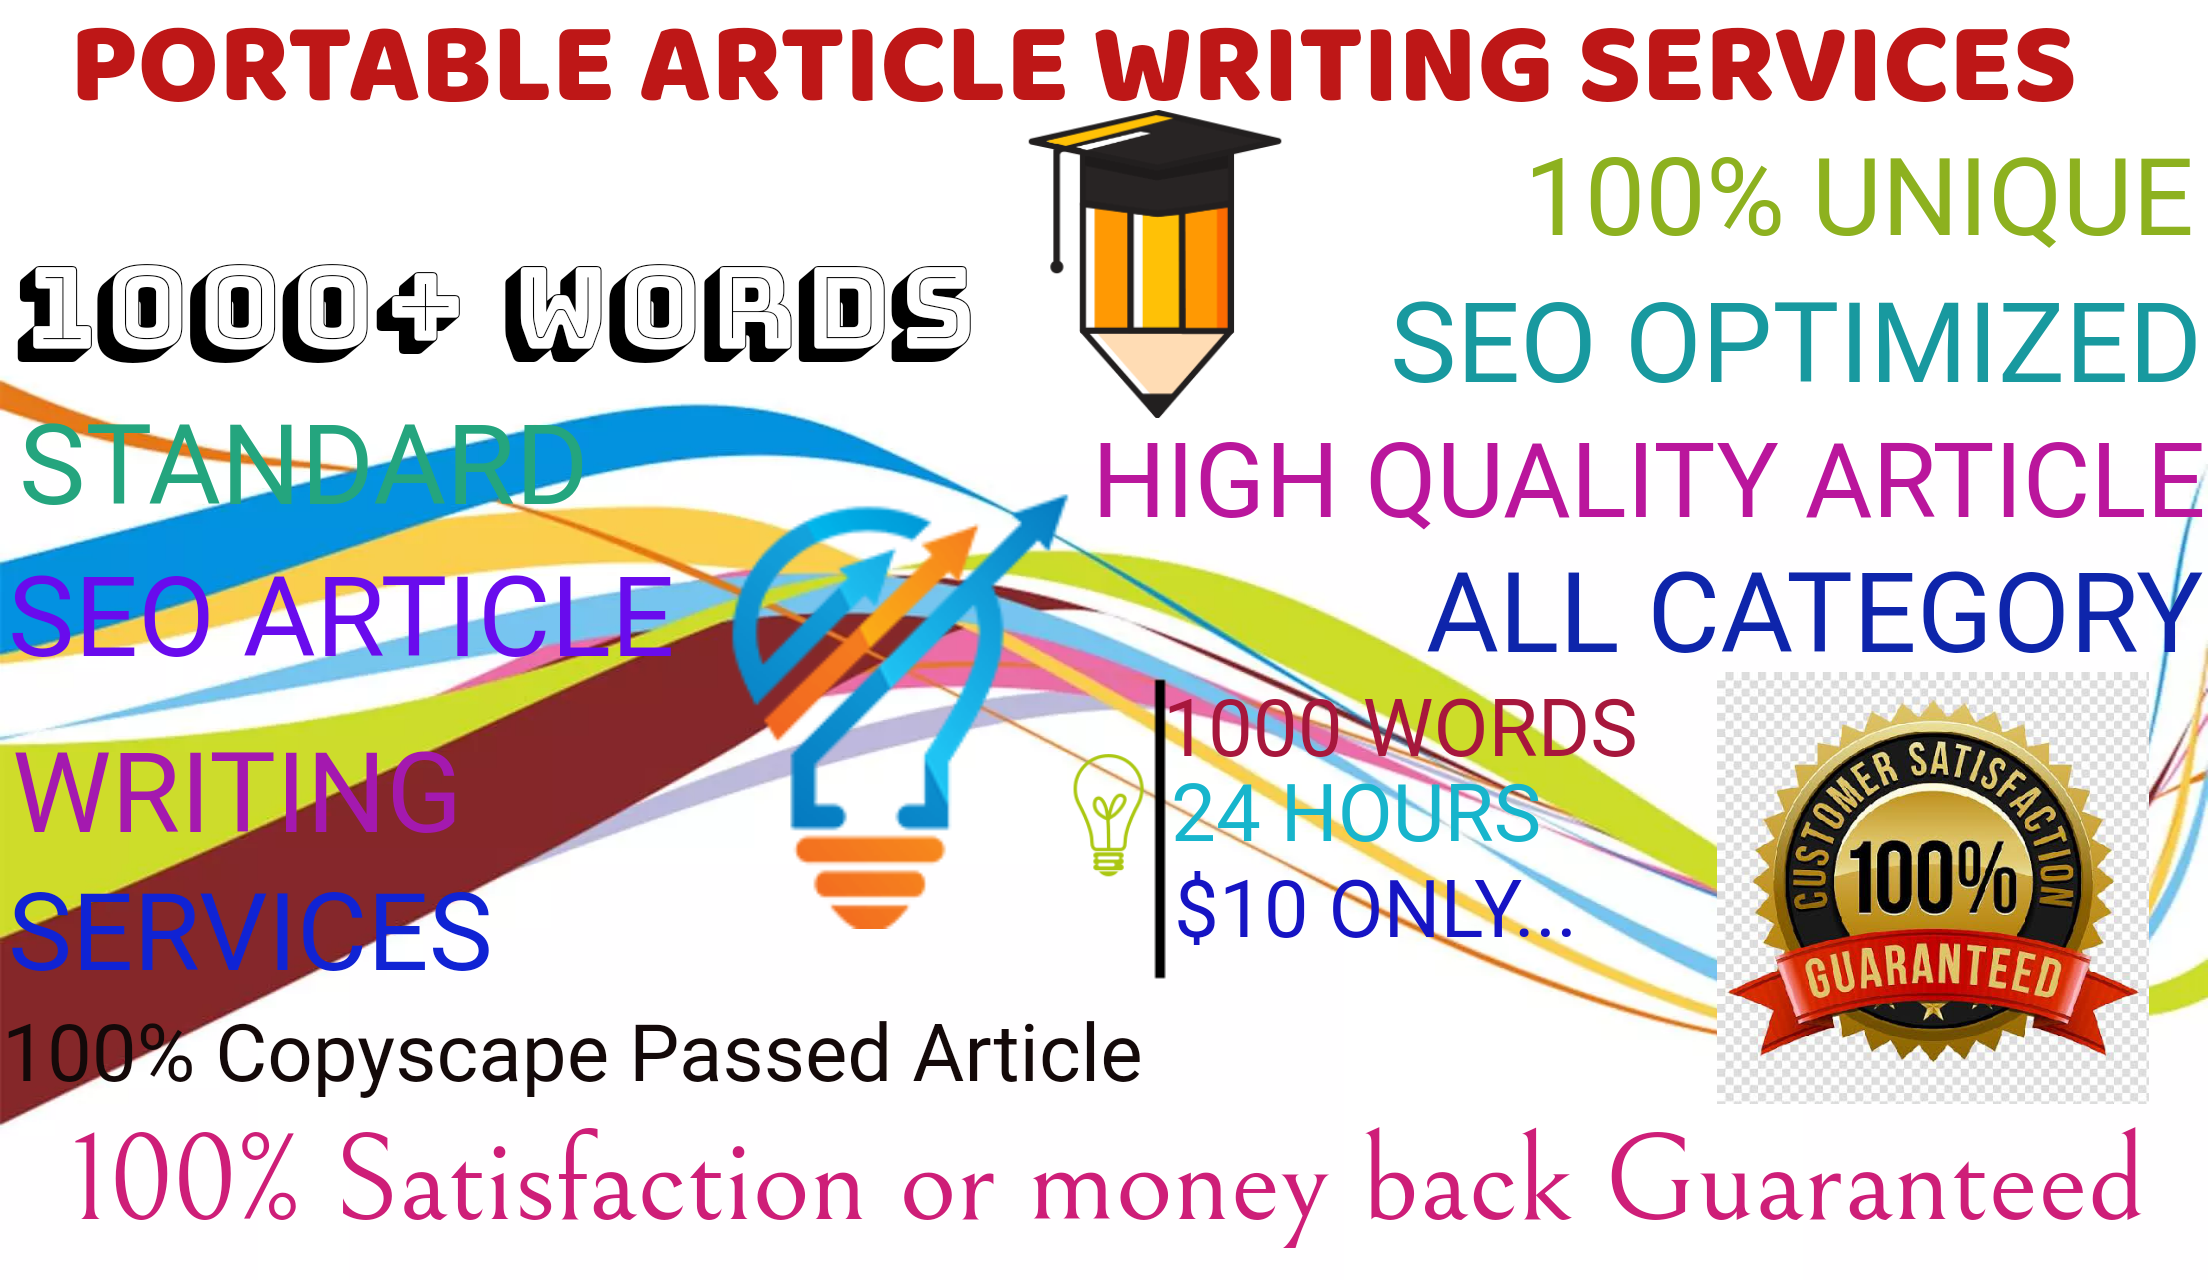 Specially Write A High Quality 1000 Word SEO Article or Blog Post